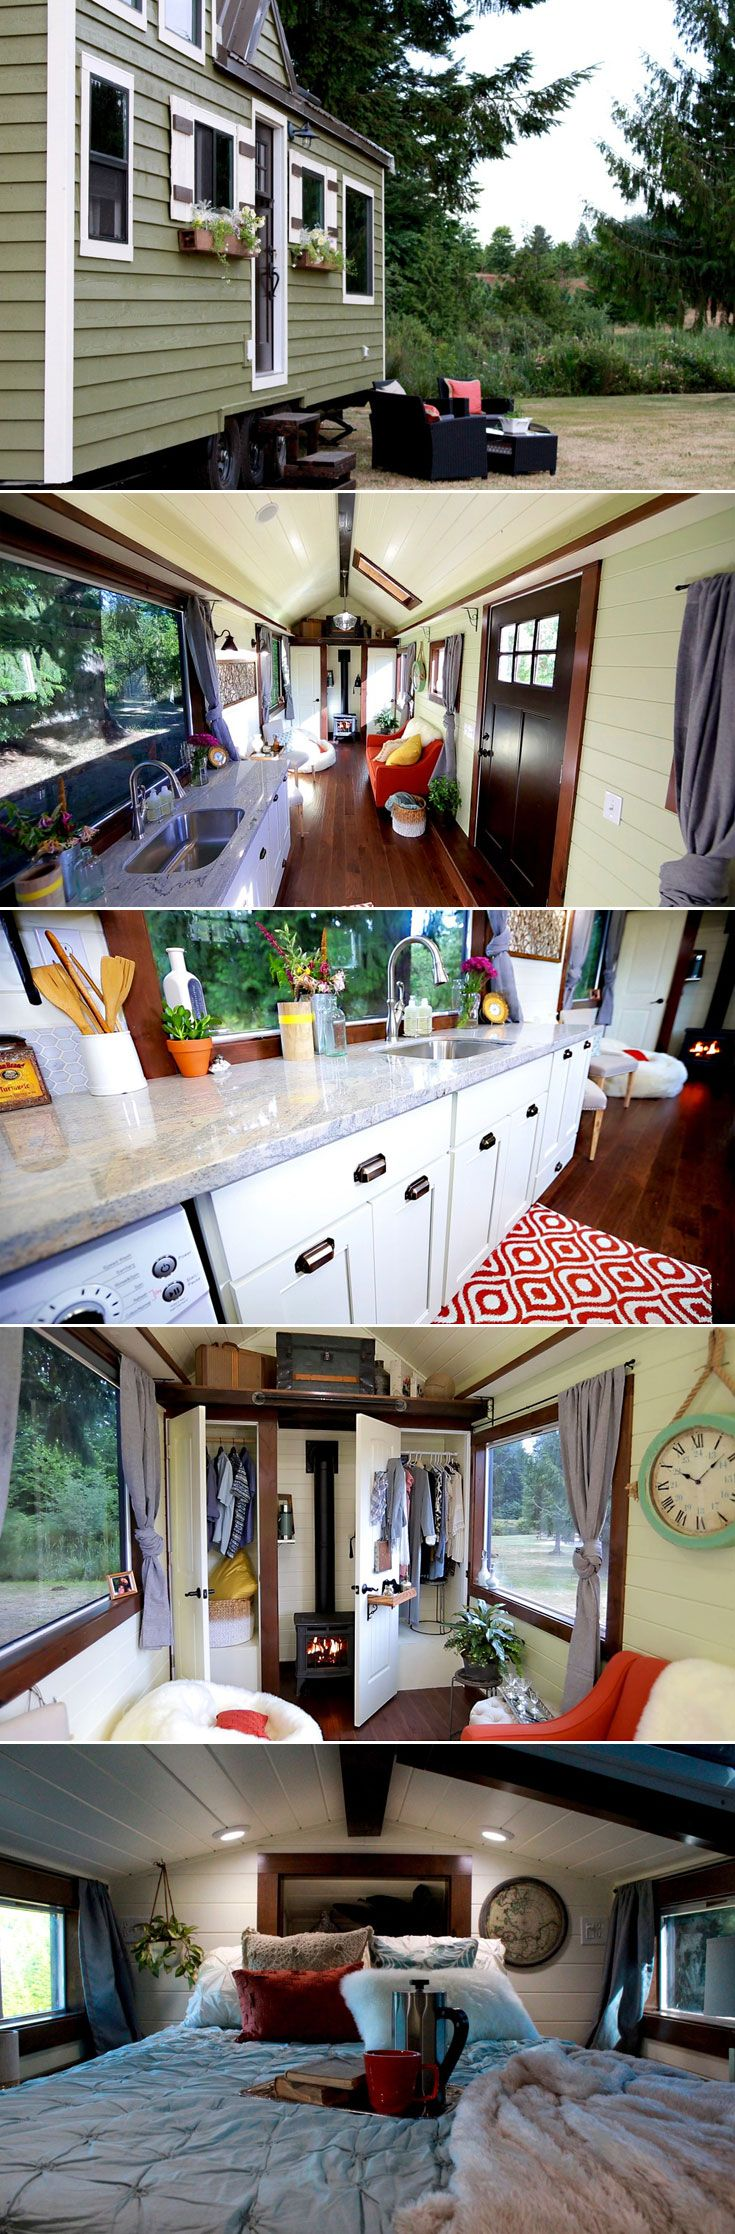 living smaller hgtv kitchen remodel best images about Living Smaller on Pinterest House plans Square feet and School buses